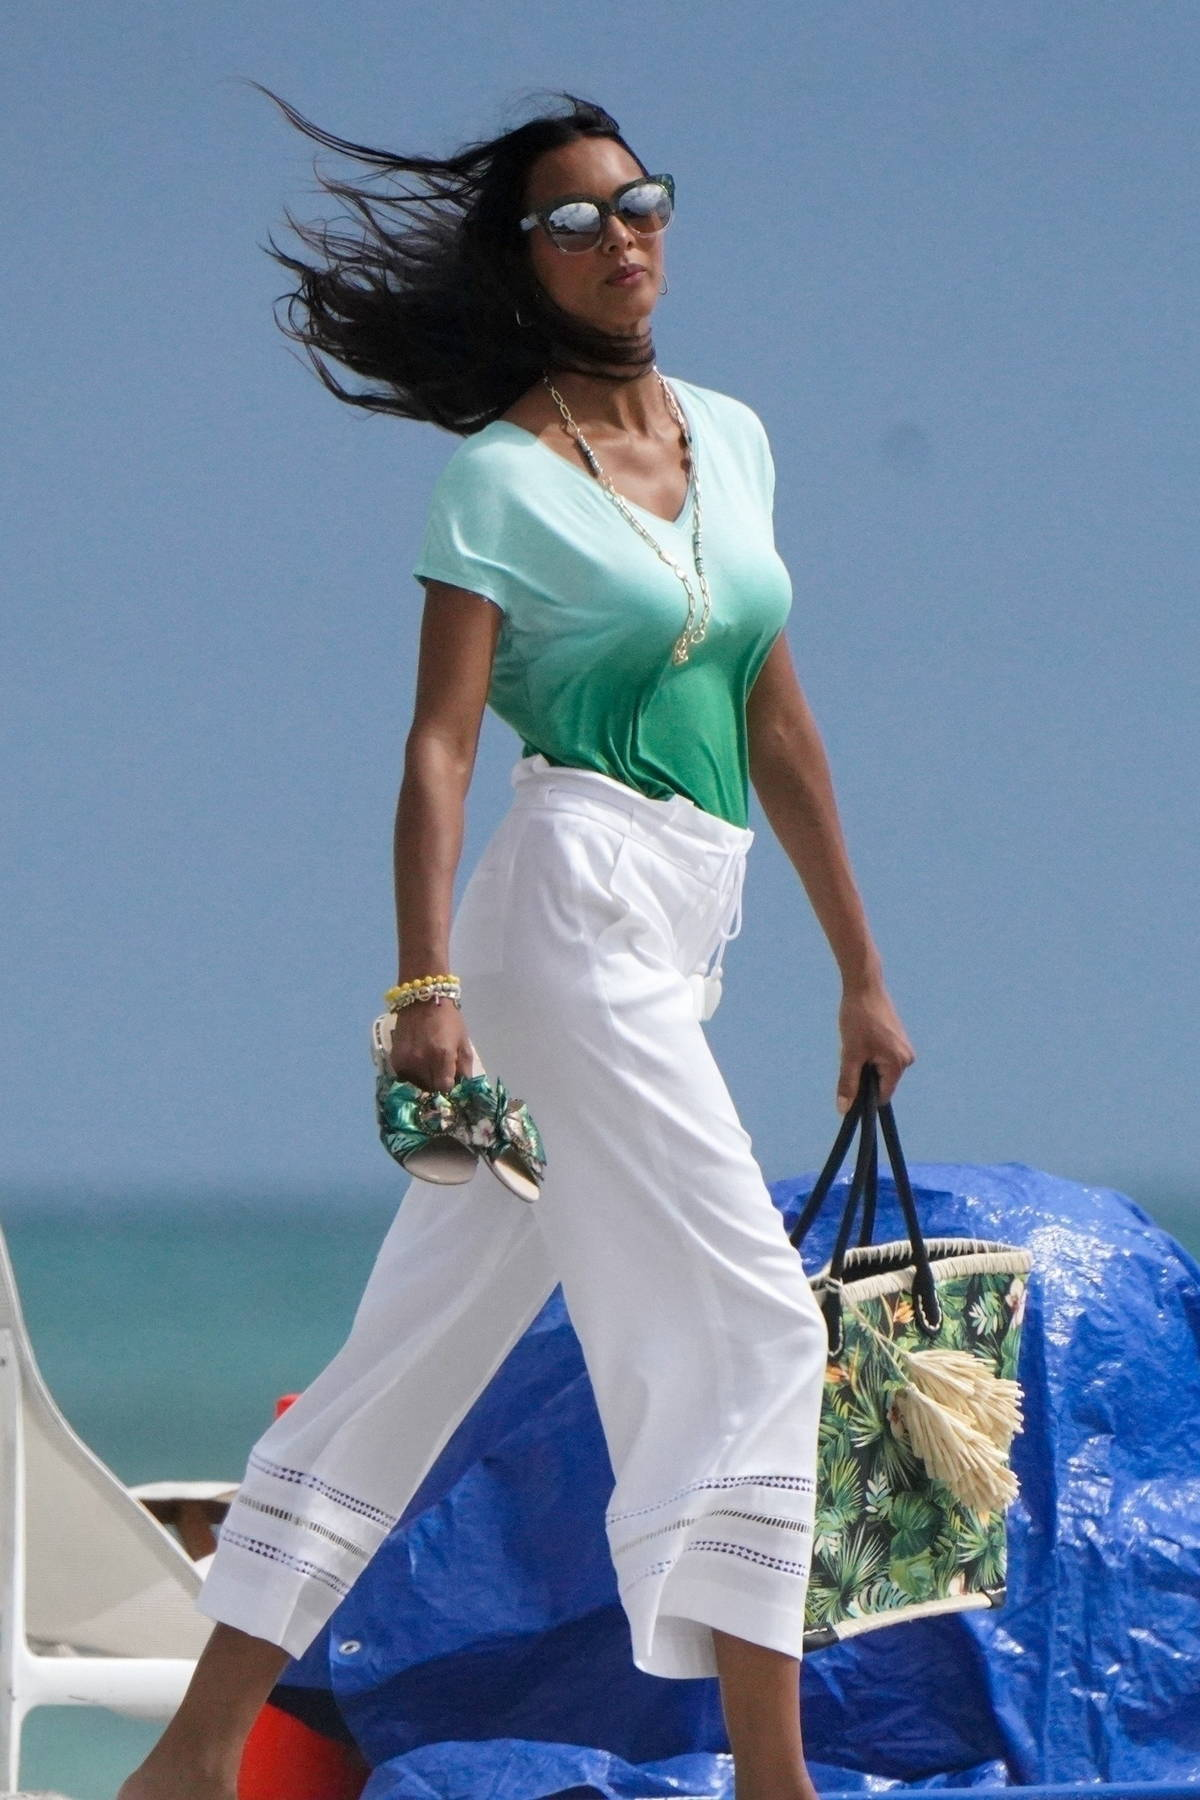 Lais Ribeiro stands out in green during a 'Tropical Inspired' photoshoot on the beach in Miami, Florida